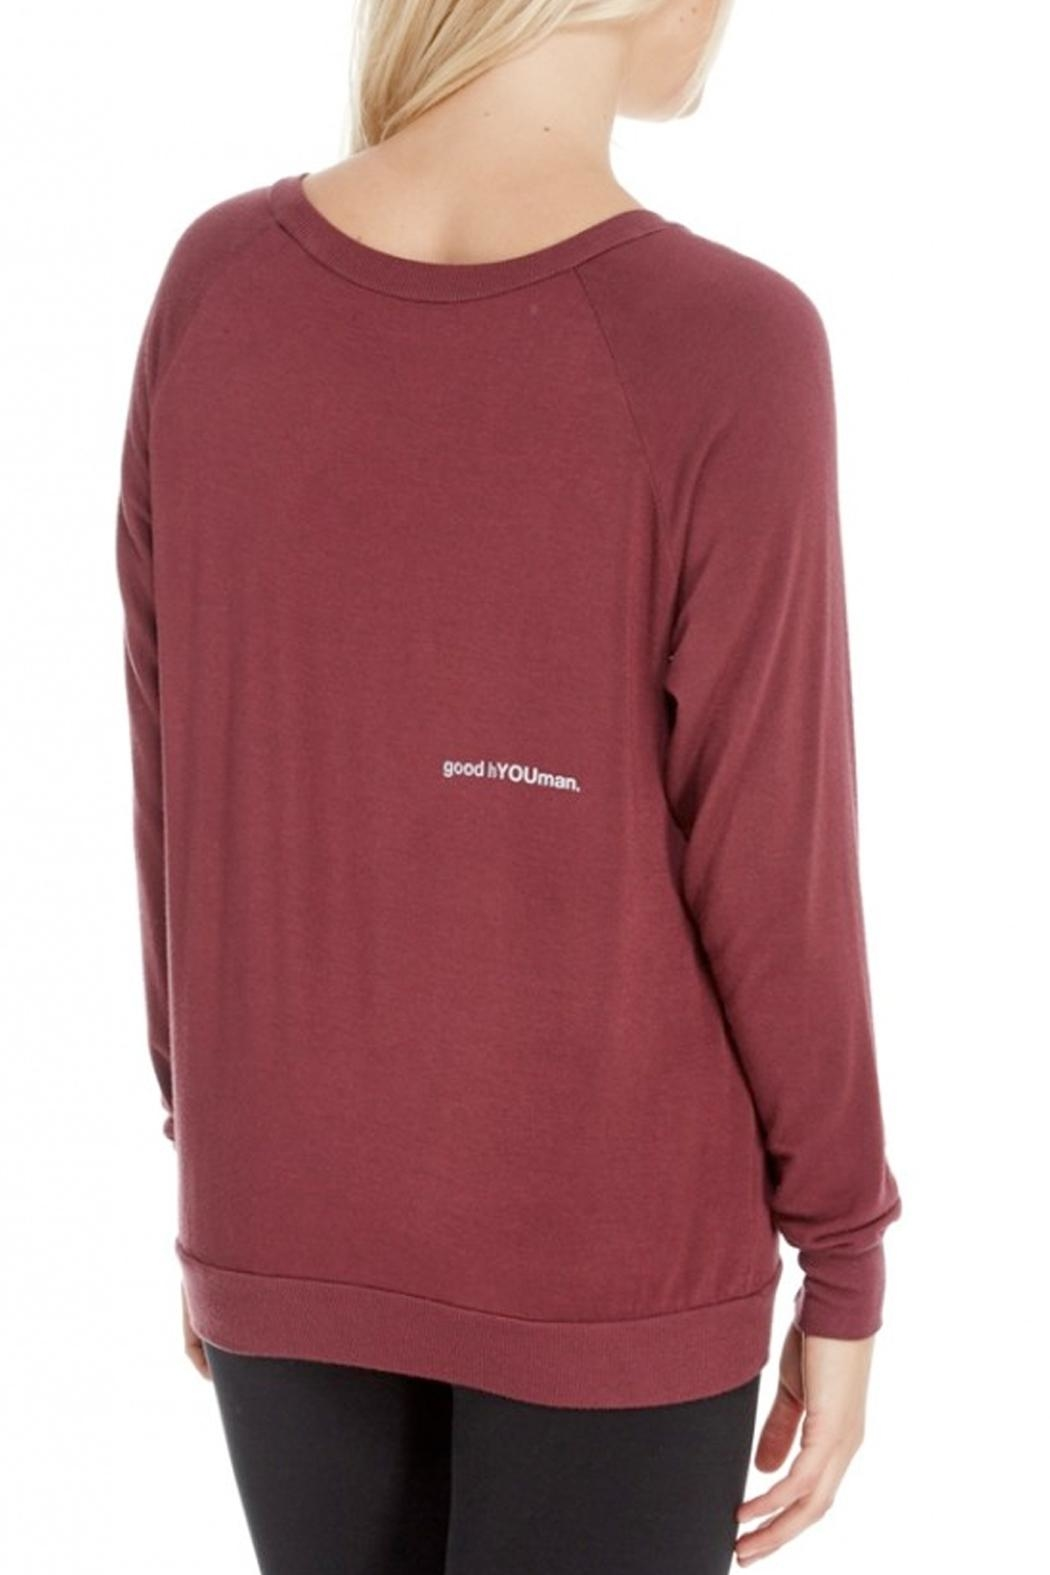 GoodhYOUman Chelsea Boatneck Pullover - Front Full Image